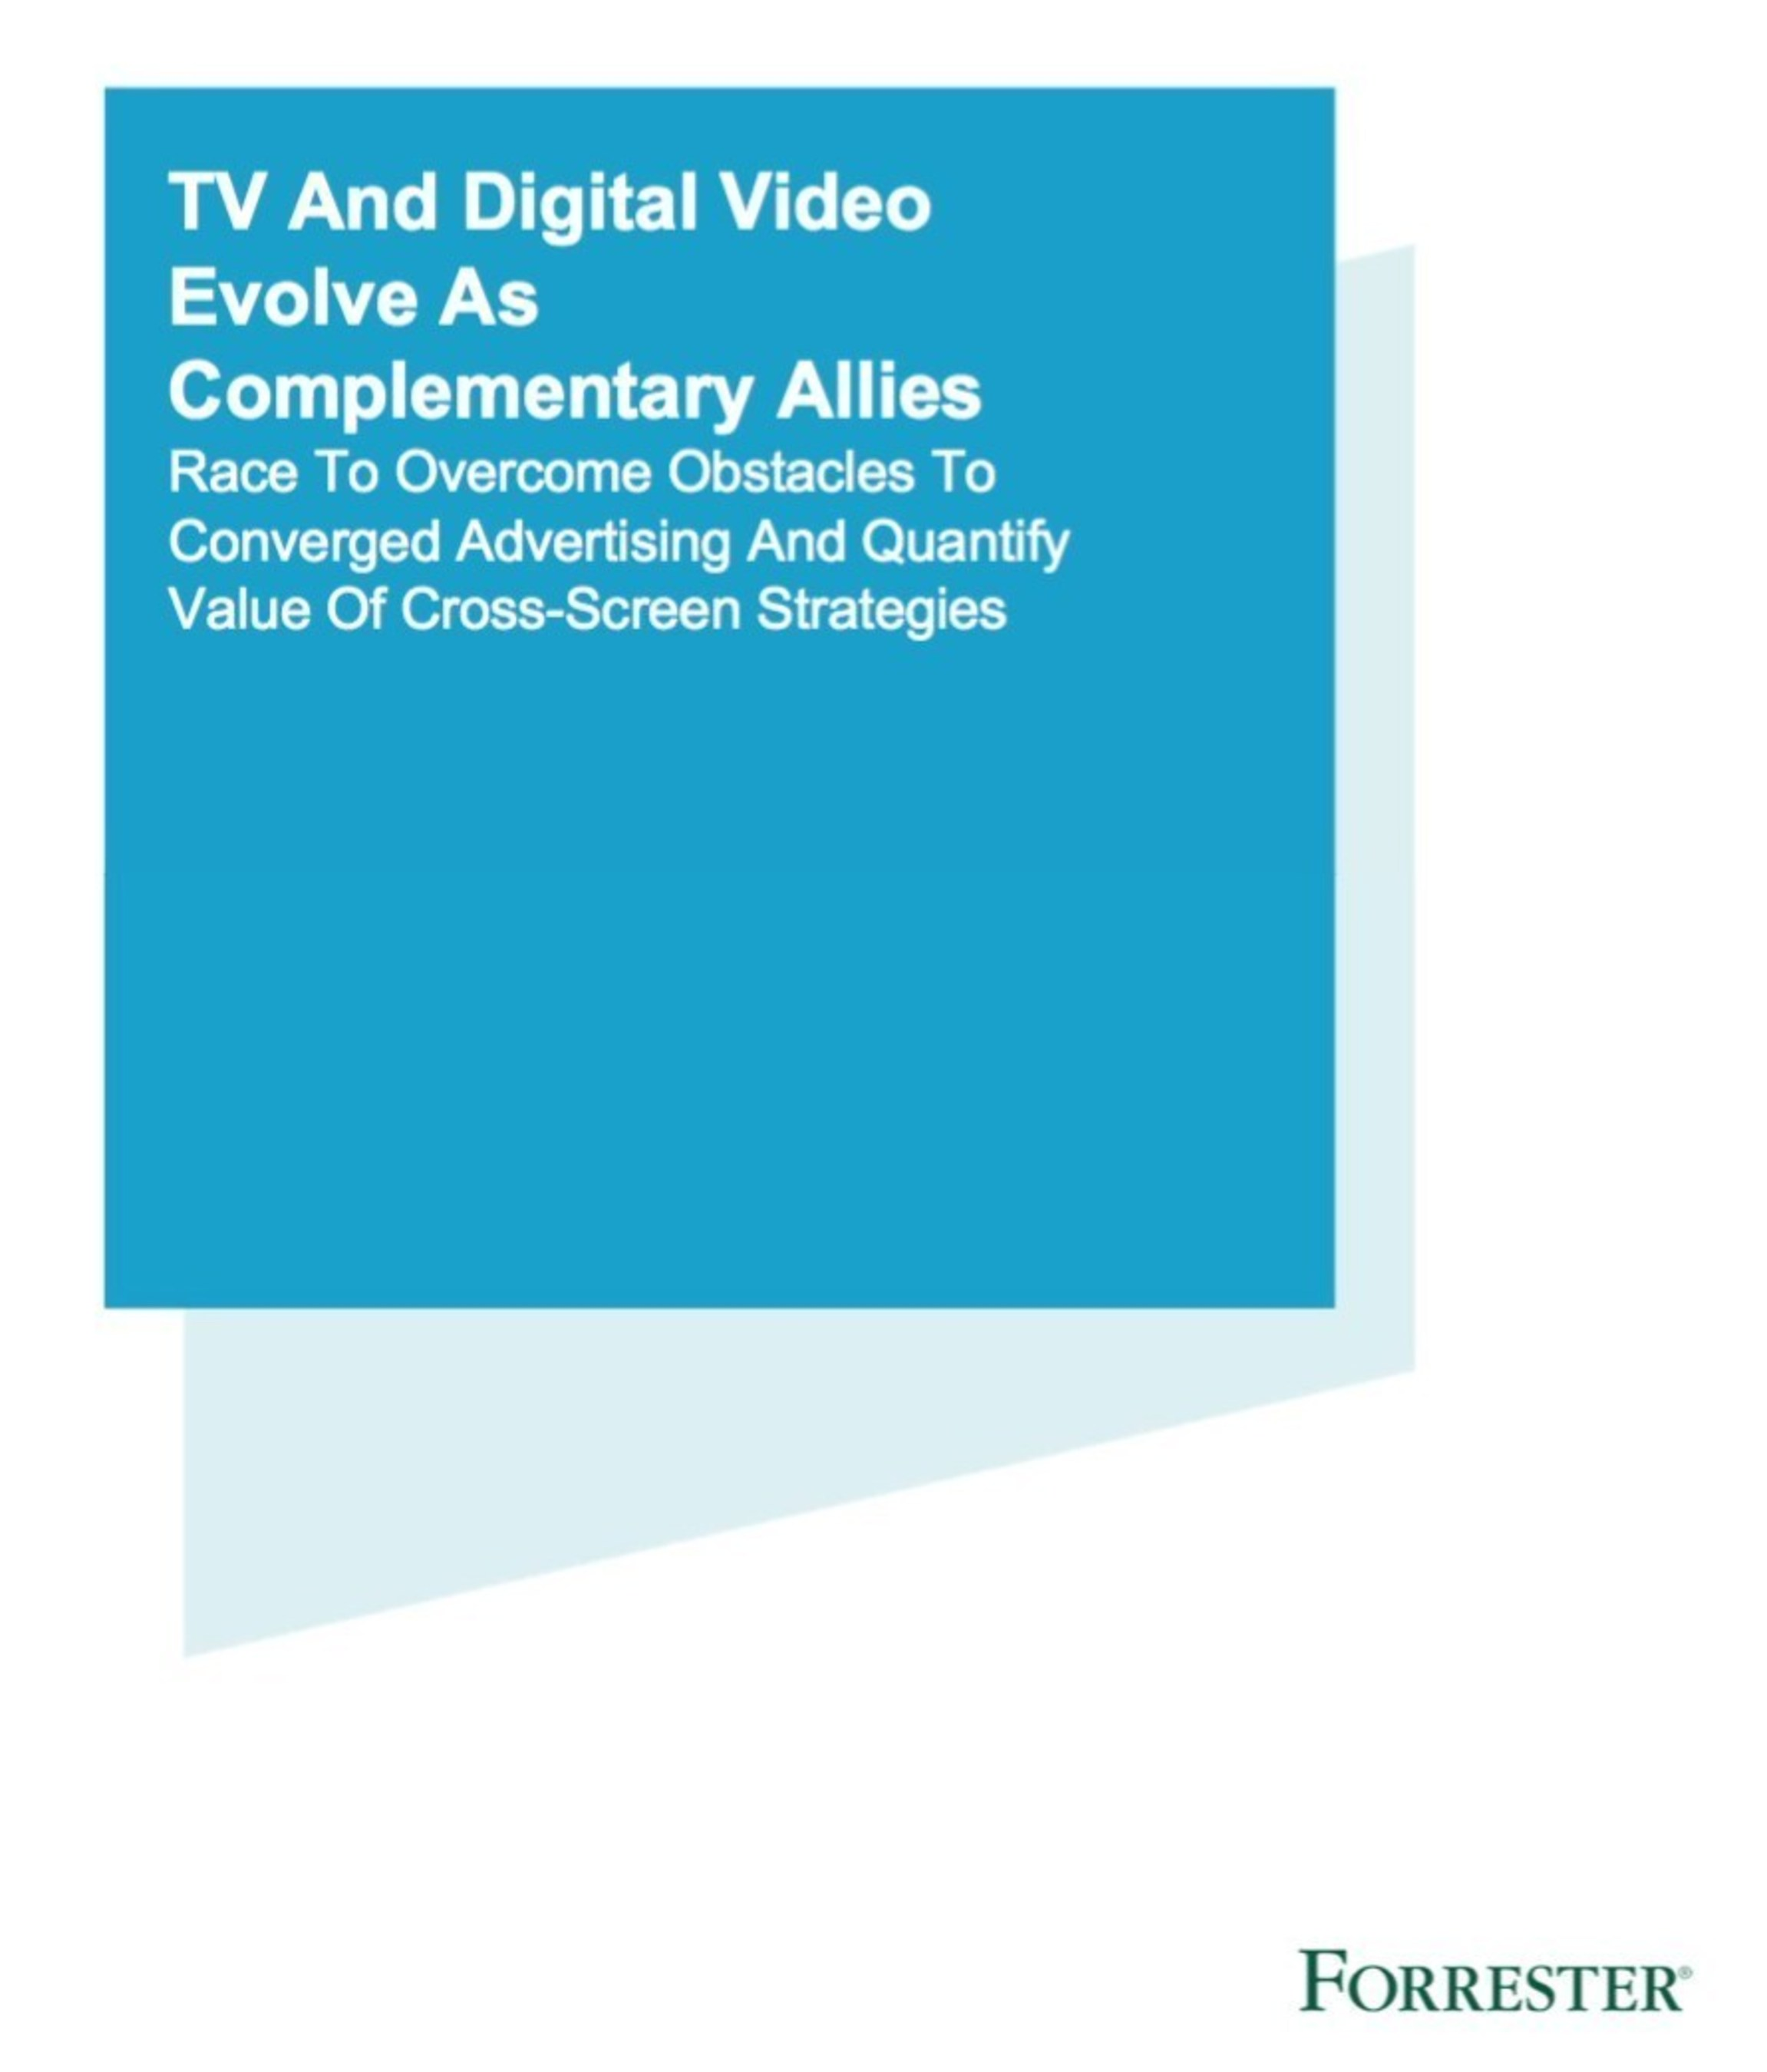 """Independent, commissioned study conducted by Forrester Consulting on behalf of Videology entitled, """"TV And Digital Video Evolve As Complementary Allies."""""""